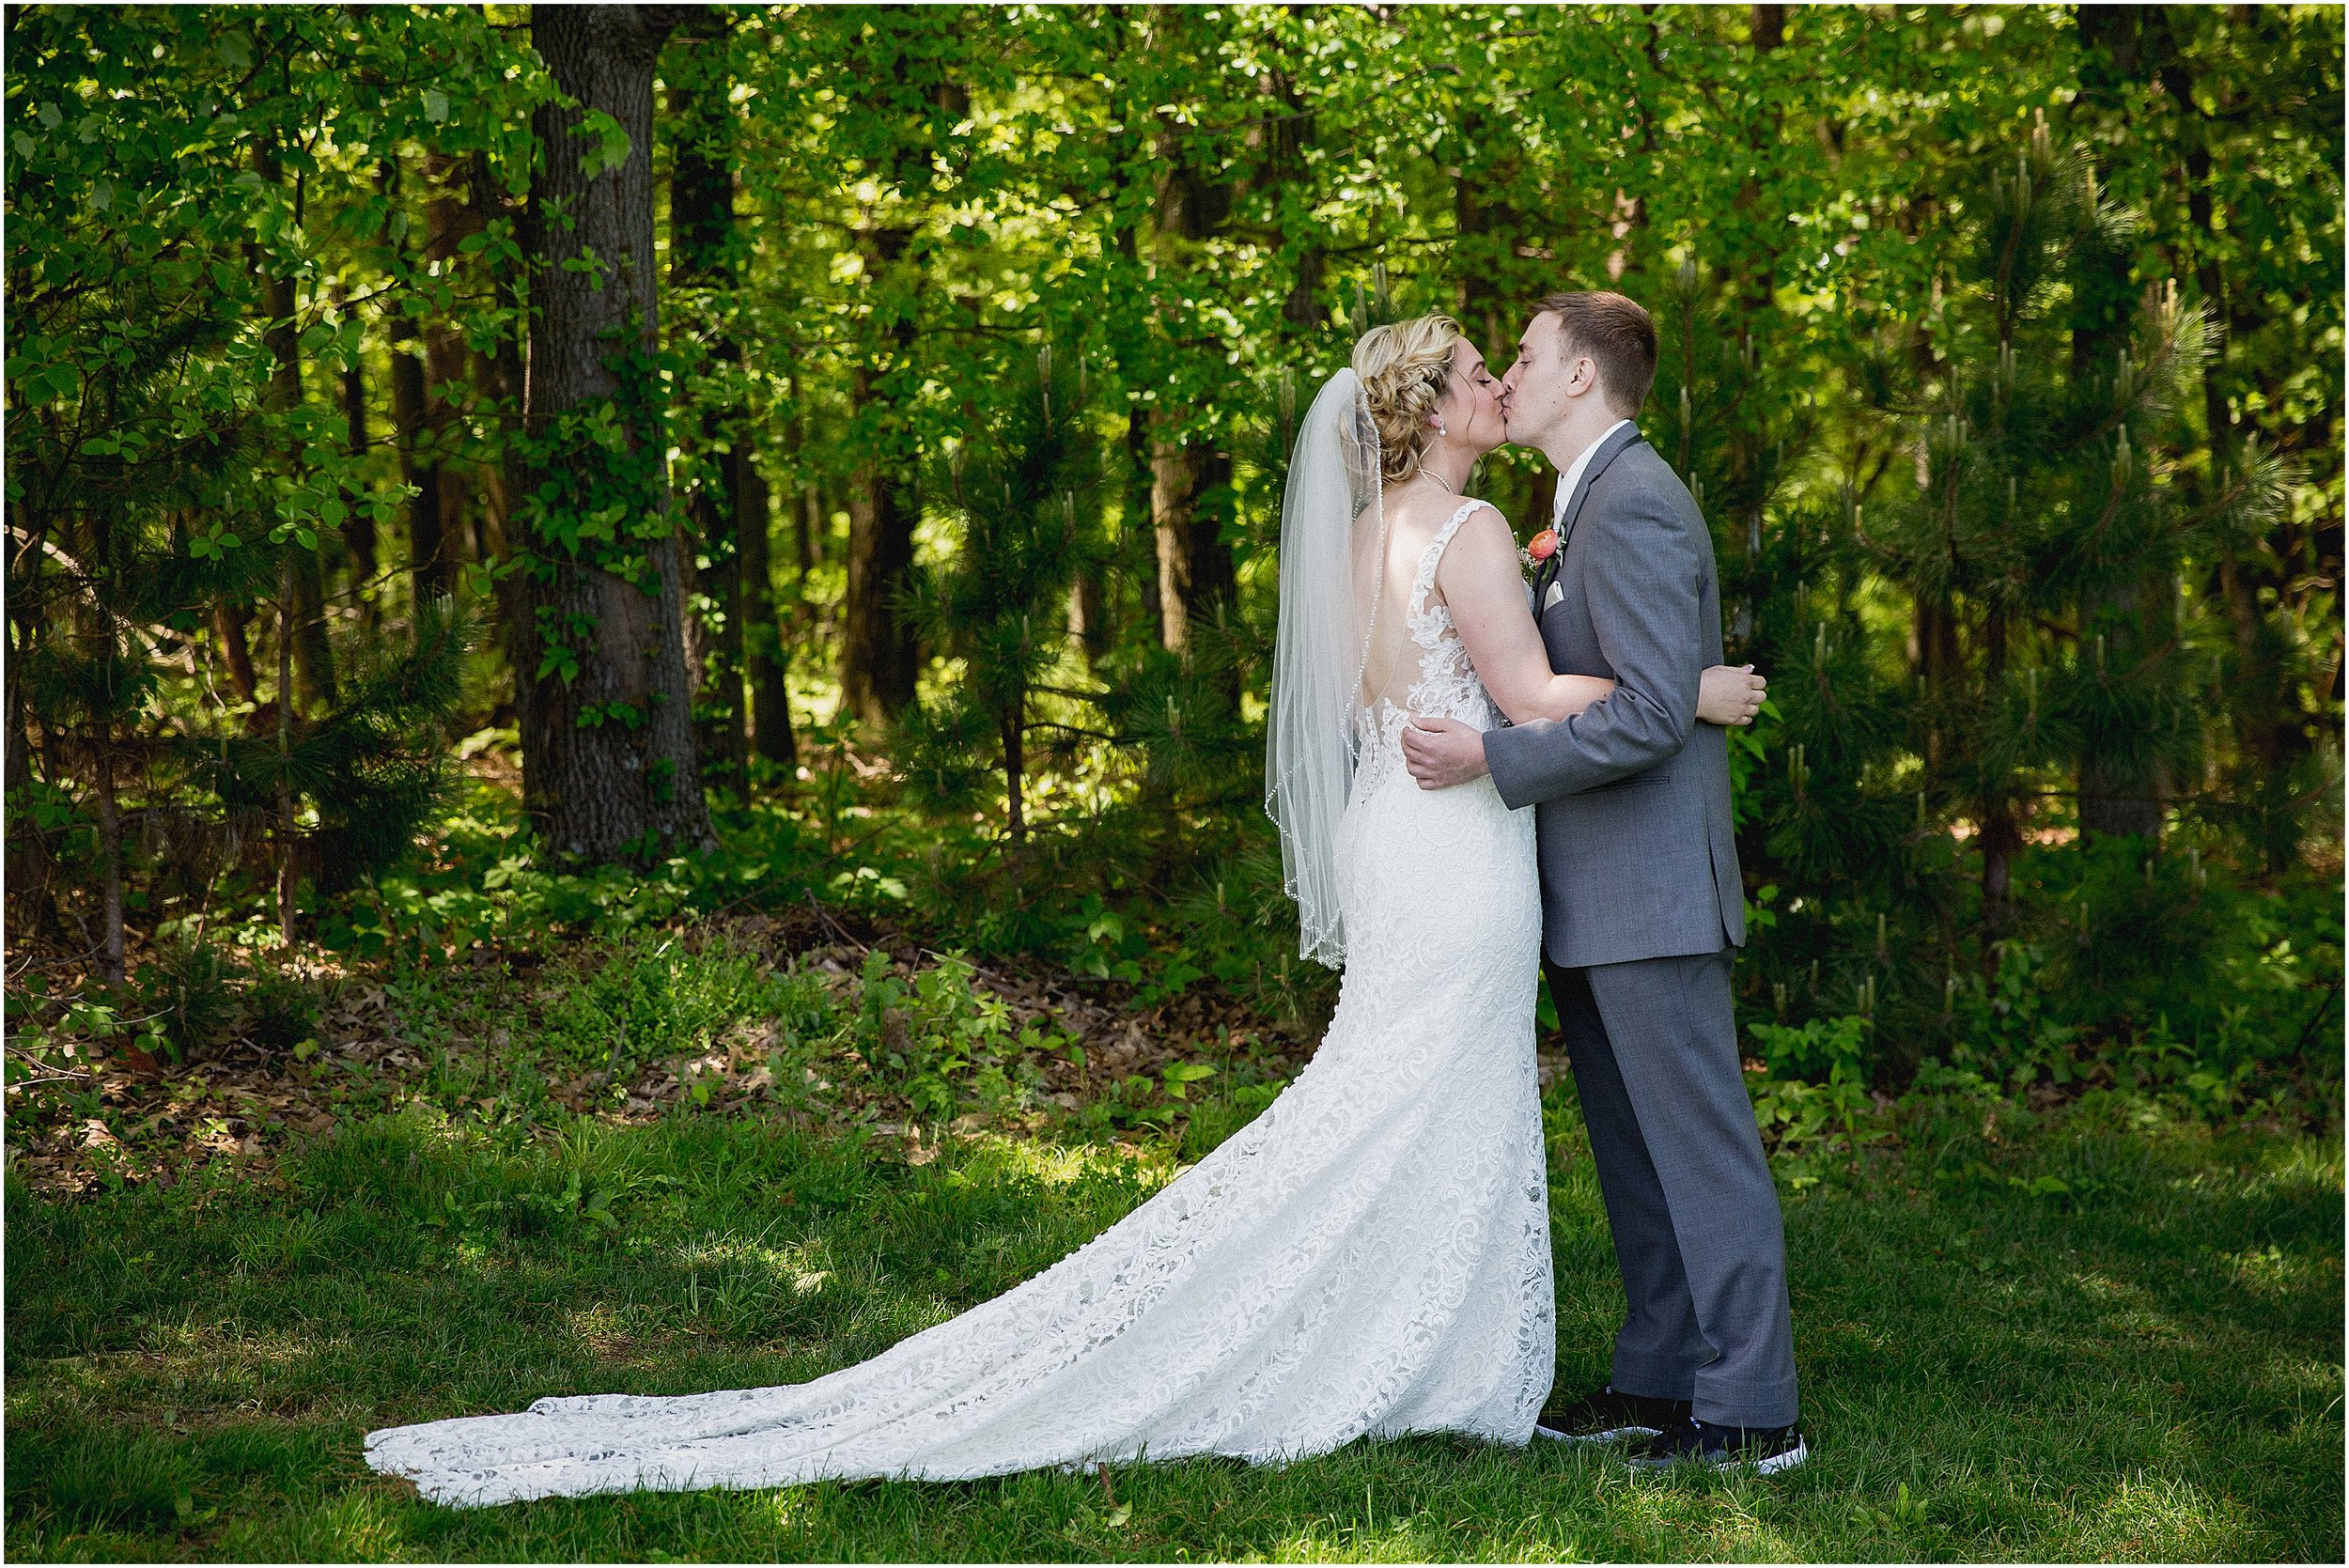 Whispering_Oaks_Wedding_Photographer_0437.jpg